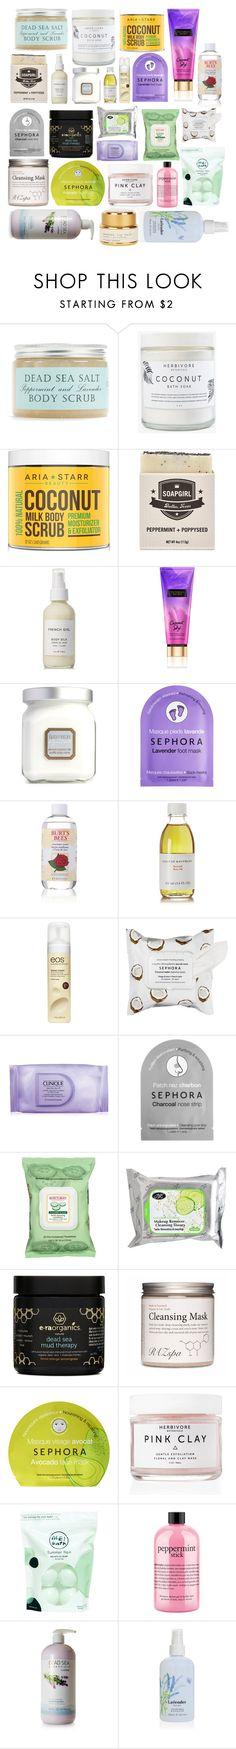 """Body Wash stuff I want"" by tychehecateartemishera ❤ liked on Polyvore featuring beauty, Herbivore, FOSSIL, French Girl, Laura Mercier, Sephora Collection, Burt's Bees, Susanne Kaufmann, Eos and Clinique"